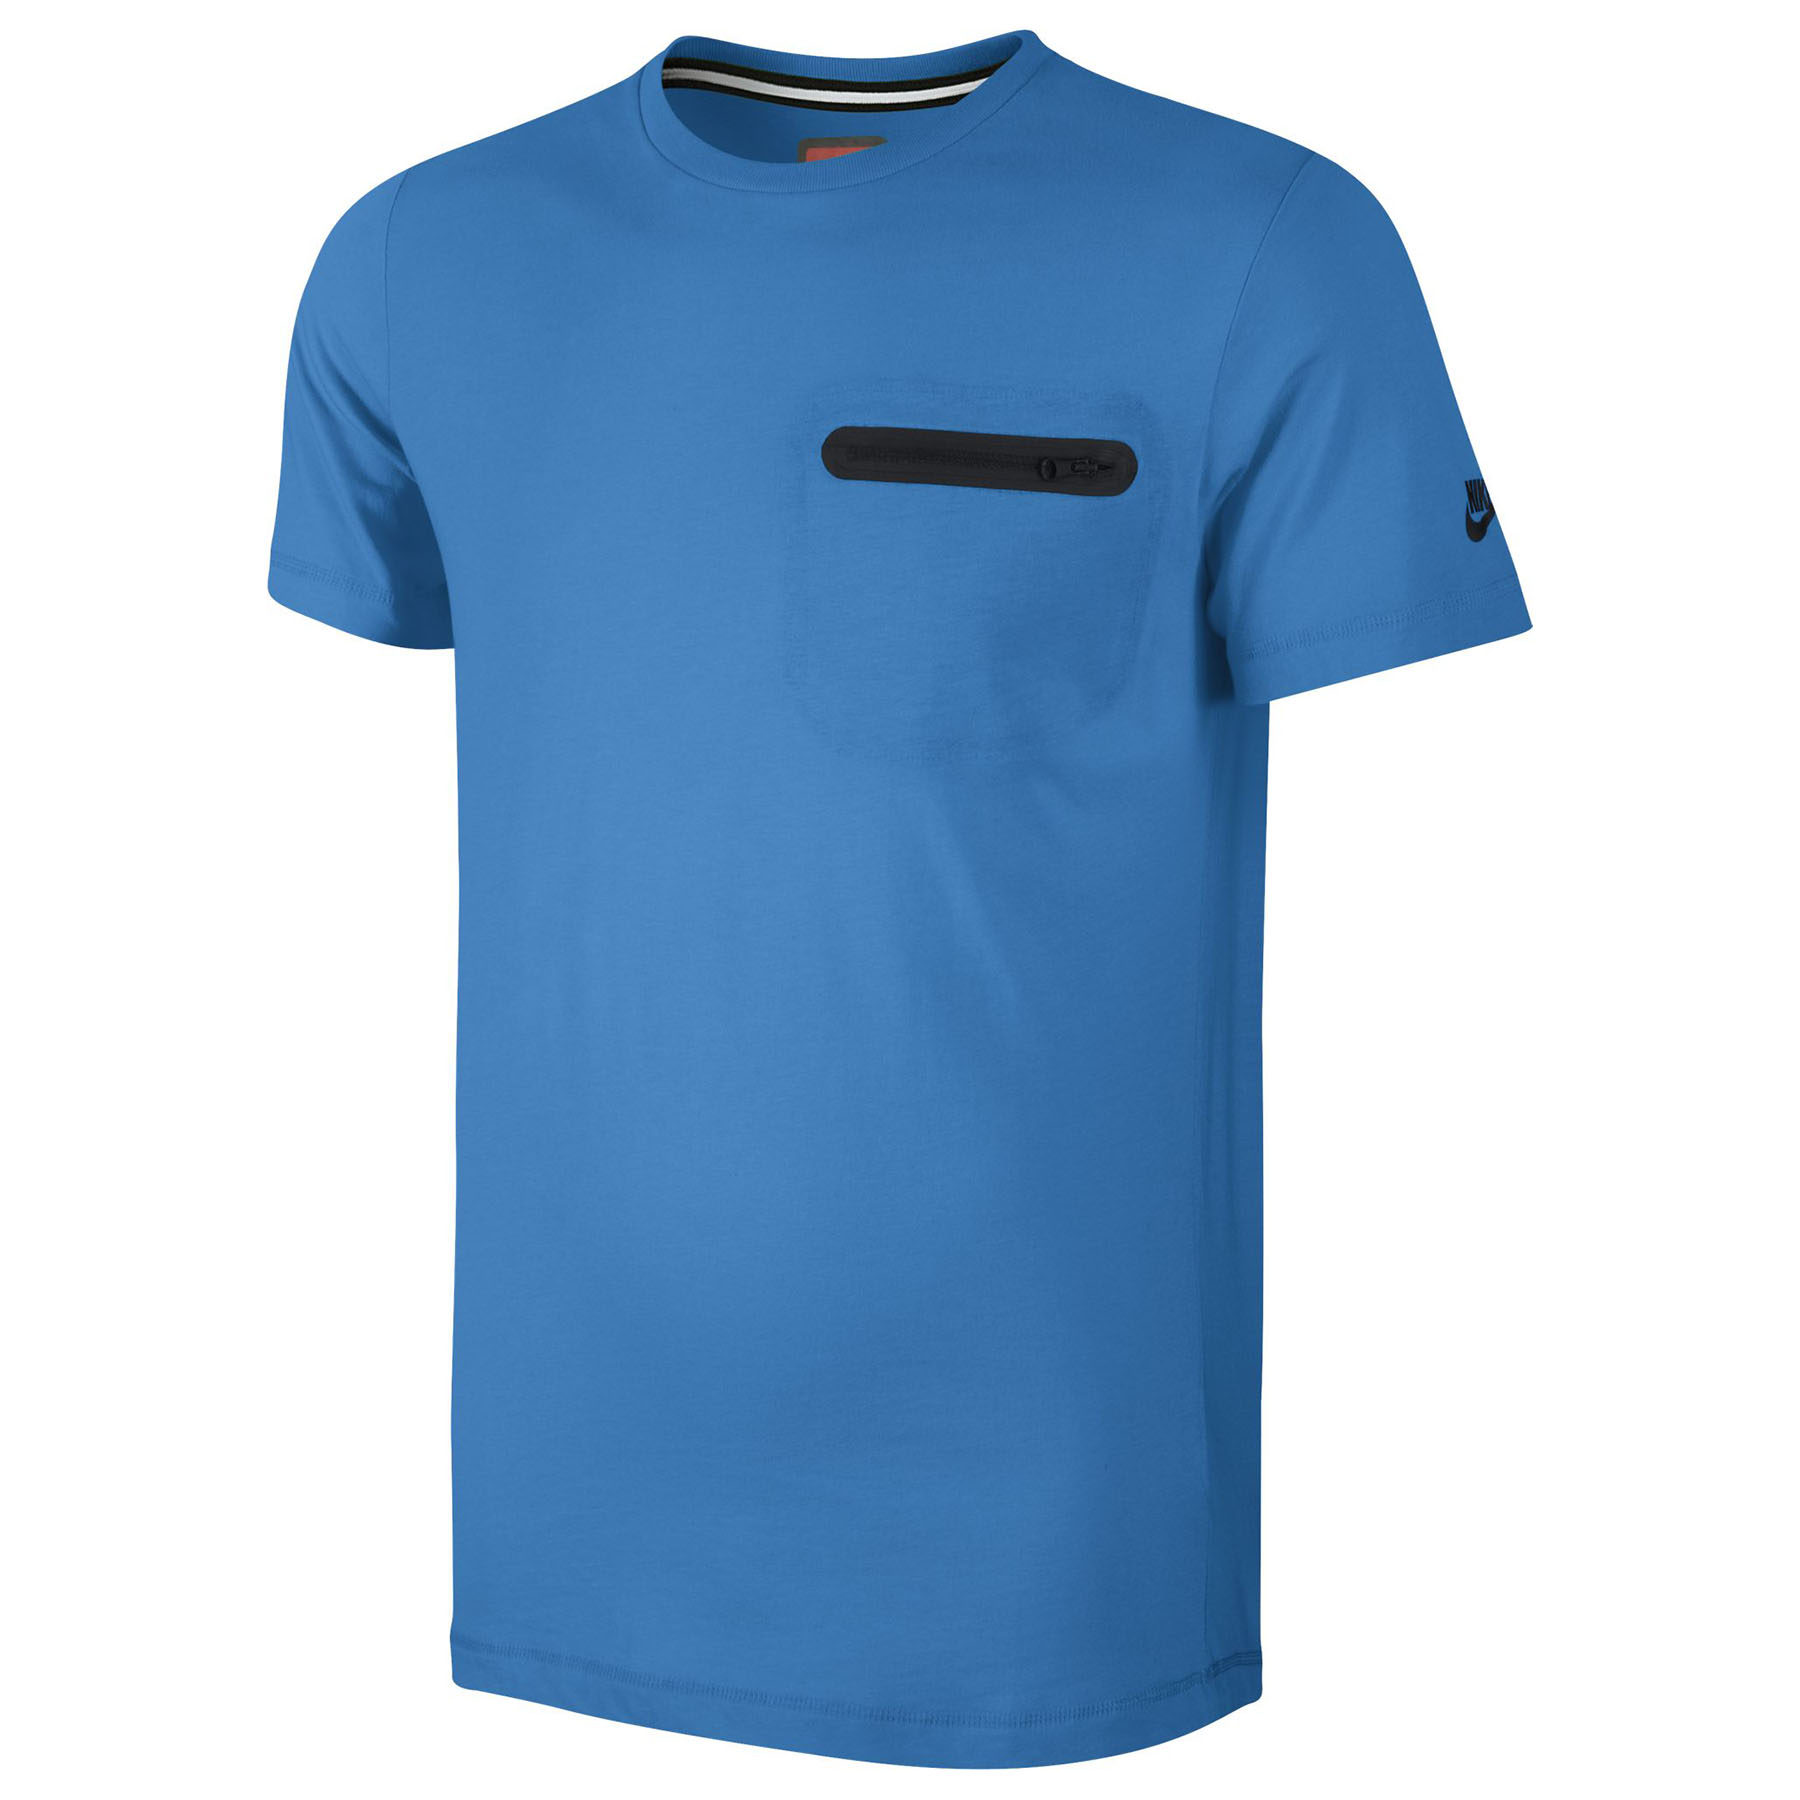 Nike Glory Tech Top Pocket T-Shirt Sky Blue